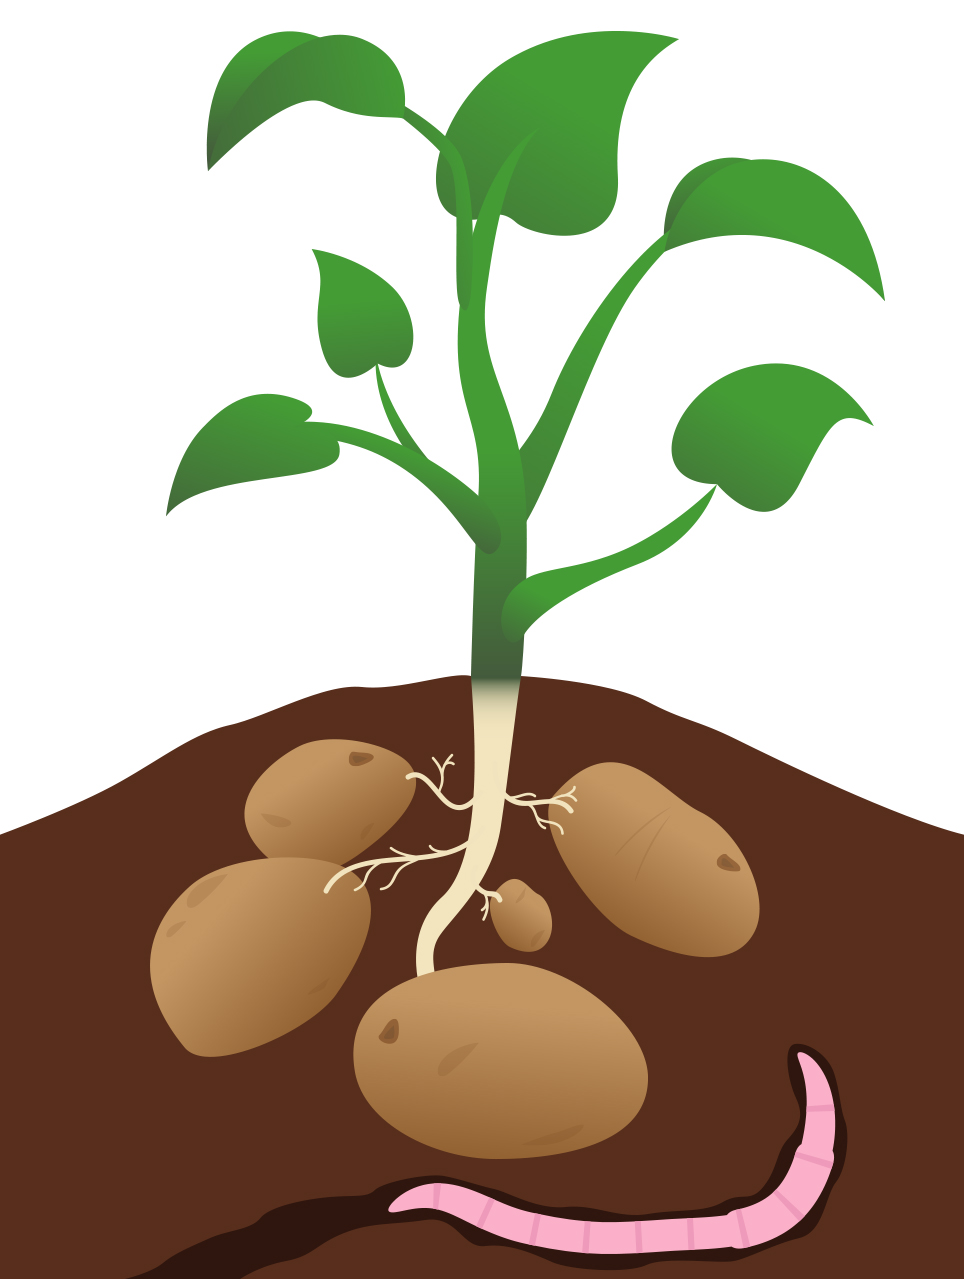 ... Potato_Plant.jpg Clipart - Free Nutrition and Healthy Food Clipart